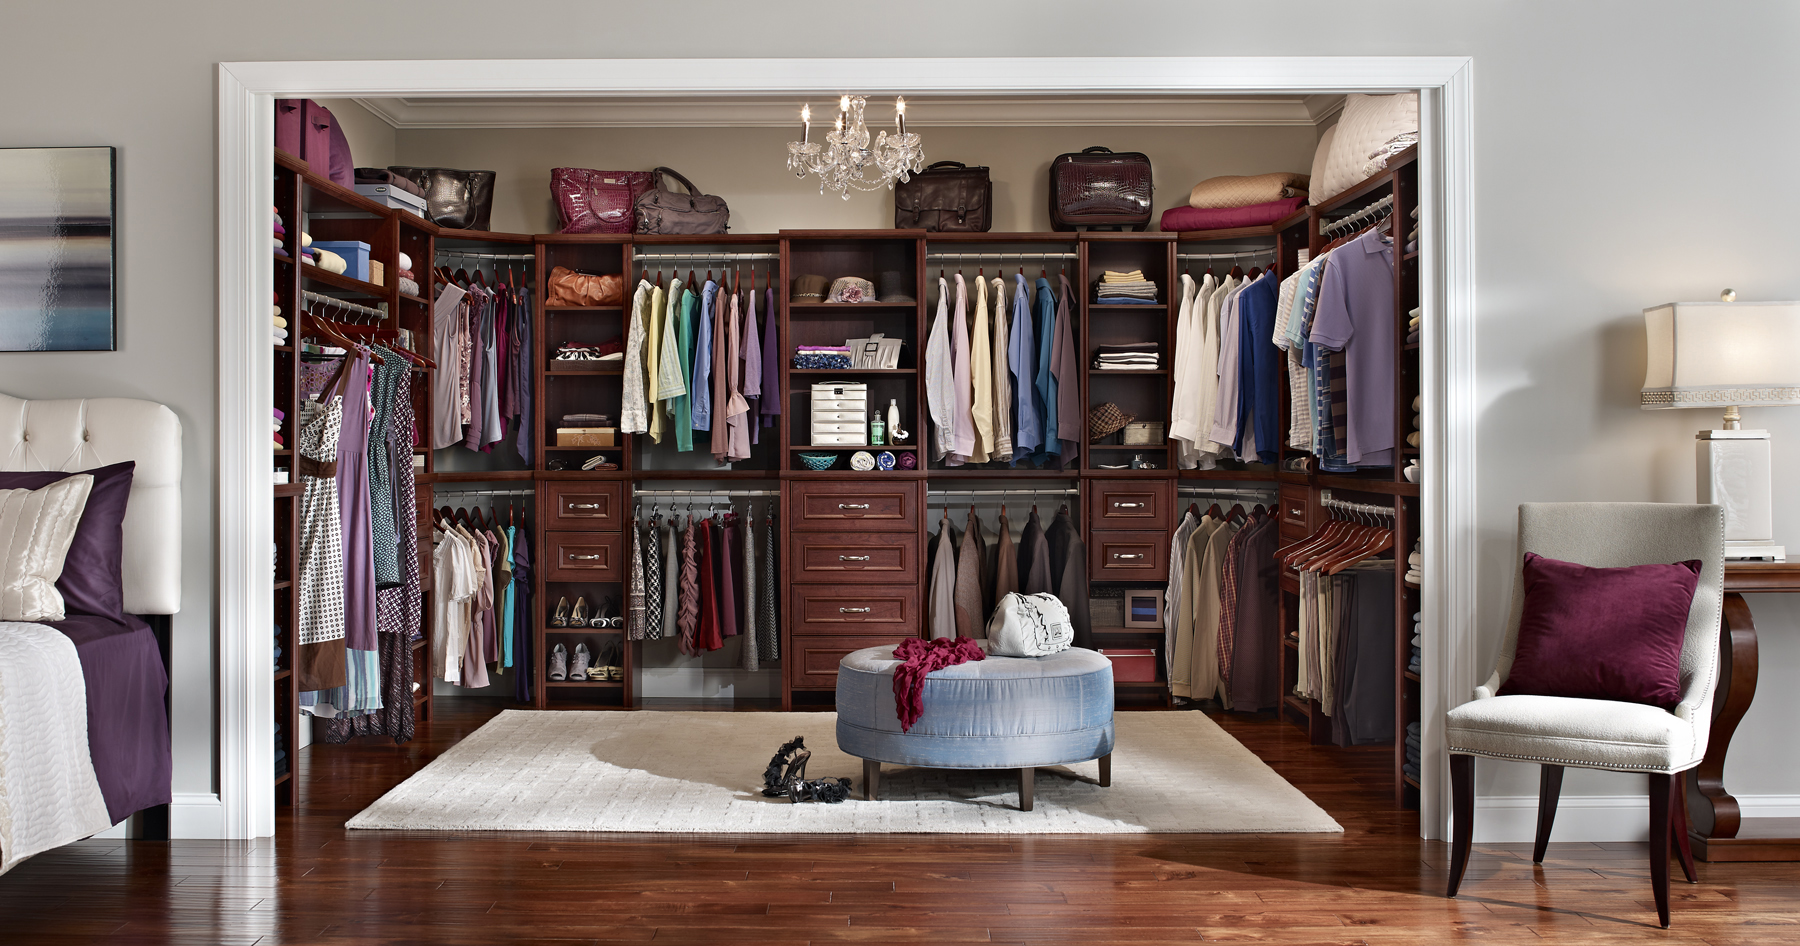 Multifunctional Bedroom Closet | My Decorative